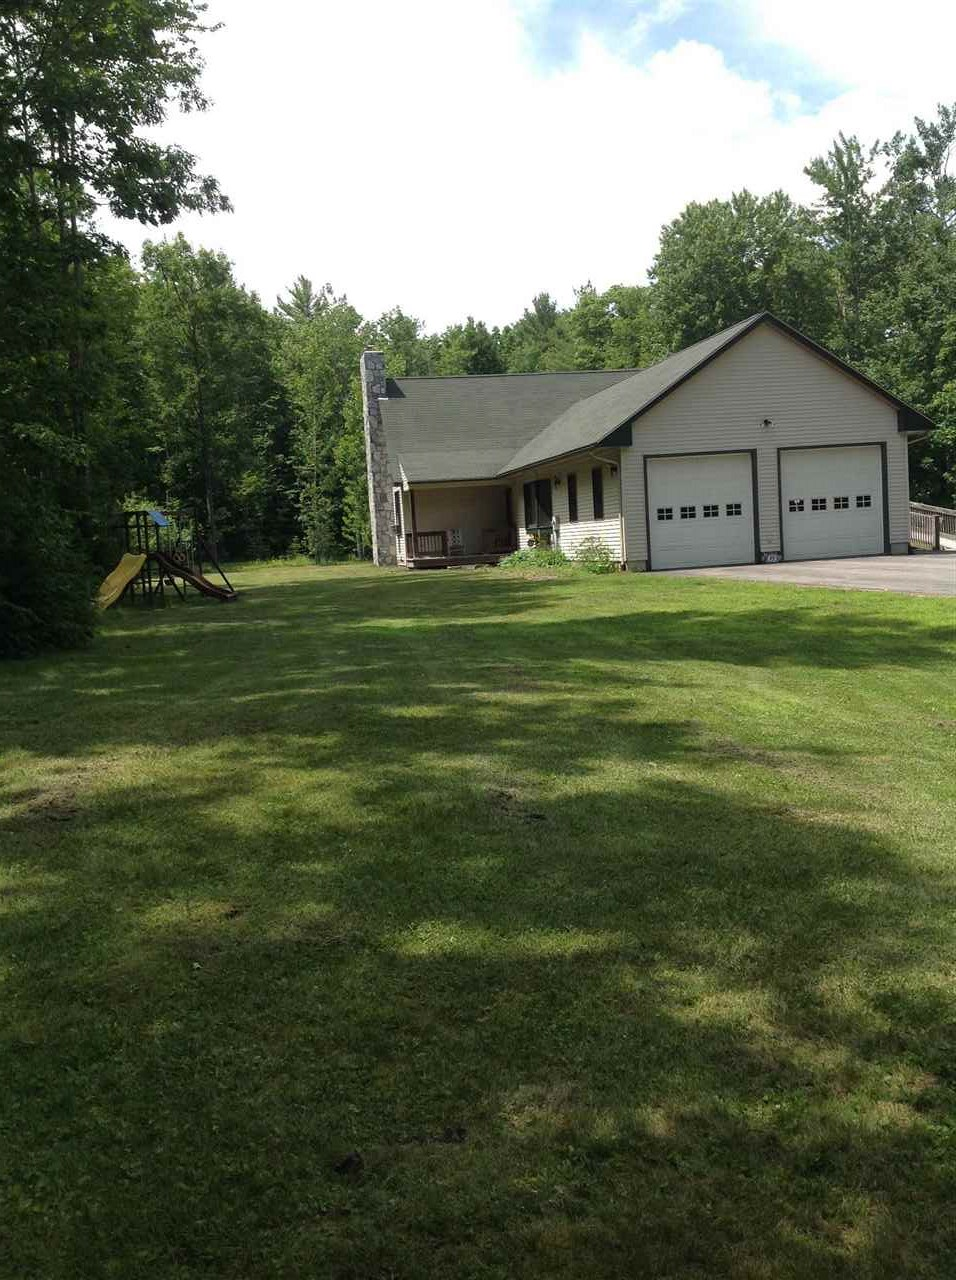 Home Group Chichester Foyer : Pound road chichester nh in county mls